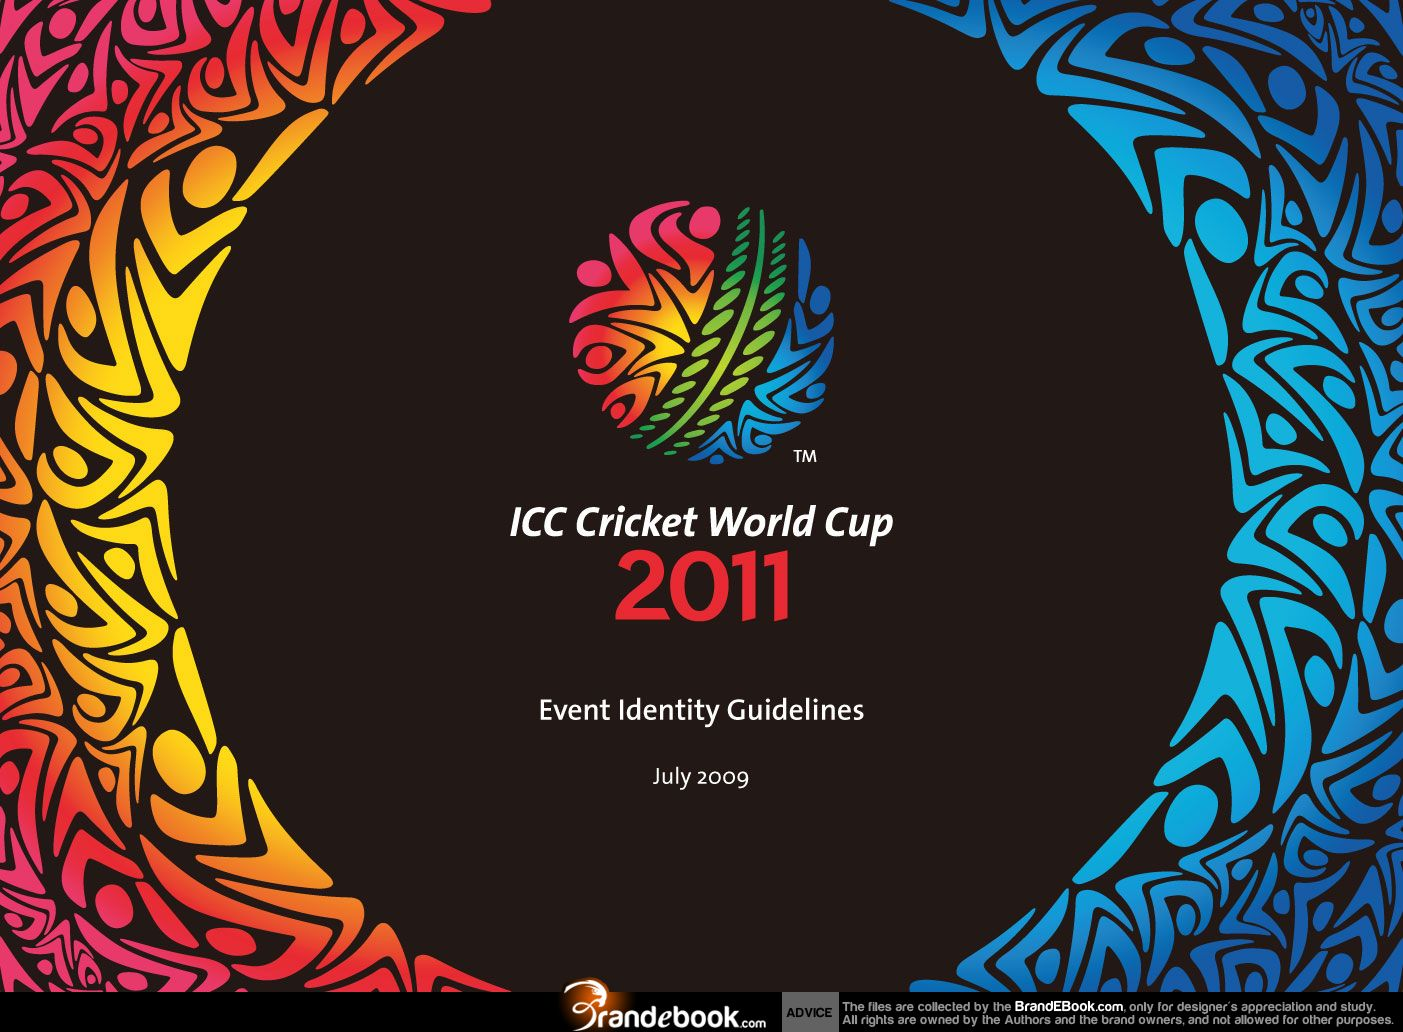 the 2011 icc cricket world cup The opening ceremony of the 2011 cricket world cup took place in bangladesh at the bangabandhu national stadium in dhaka on february 17, 2011, two days prior to the.